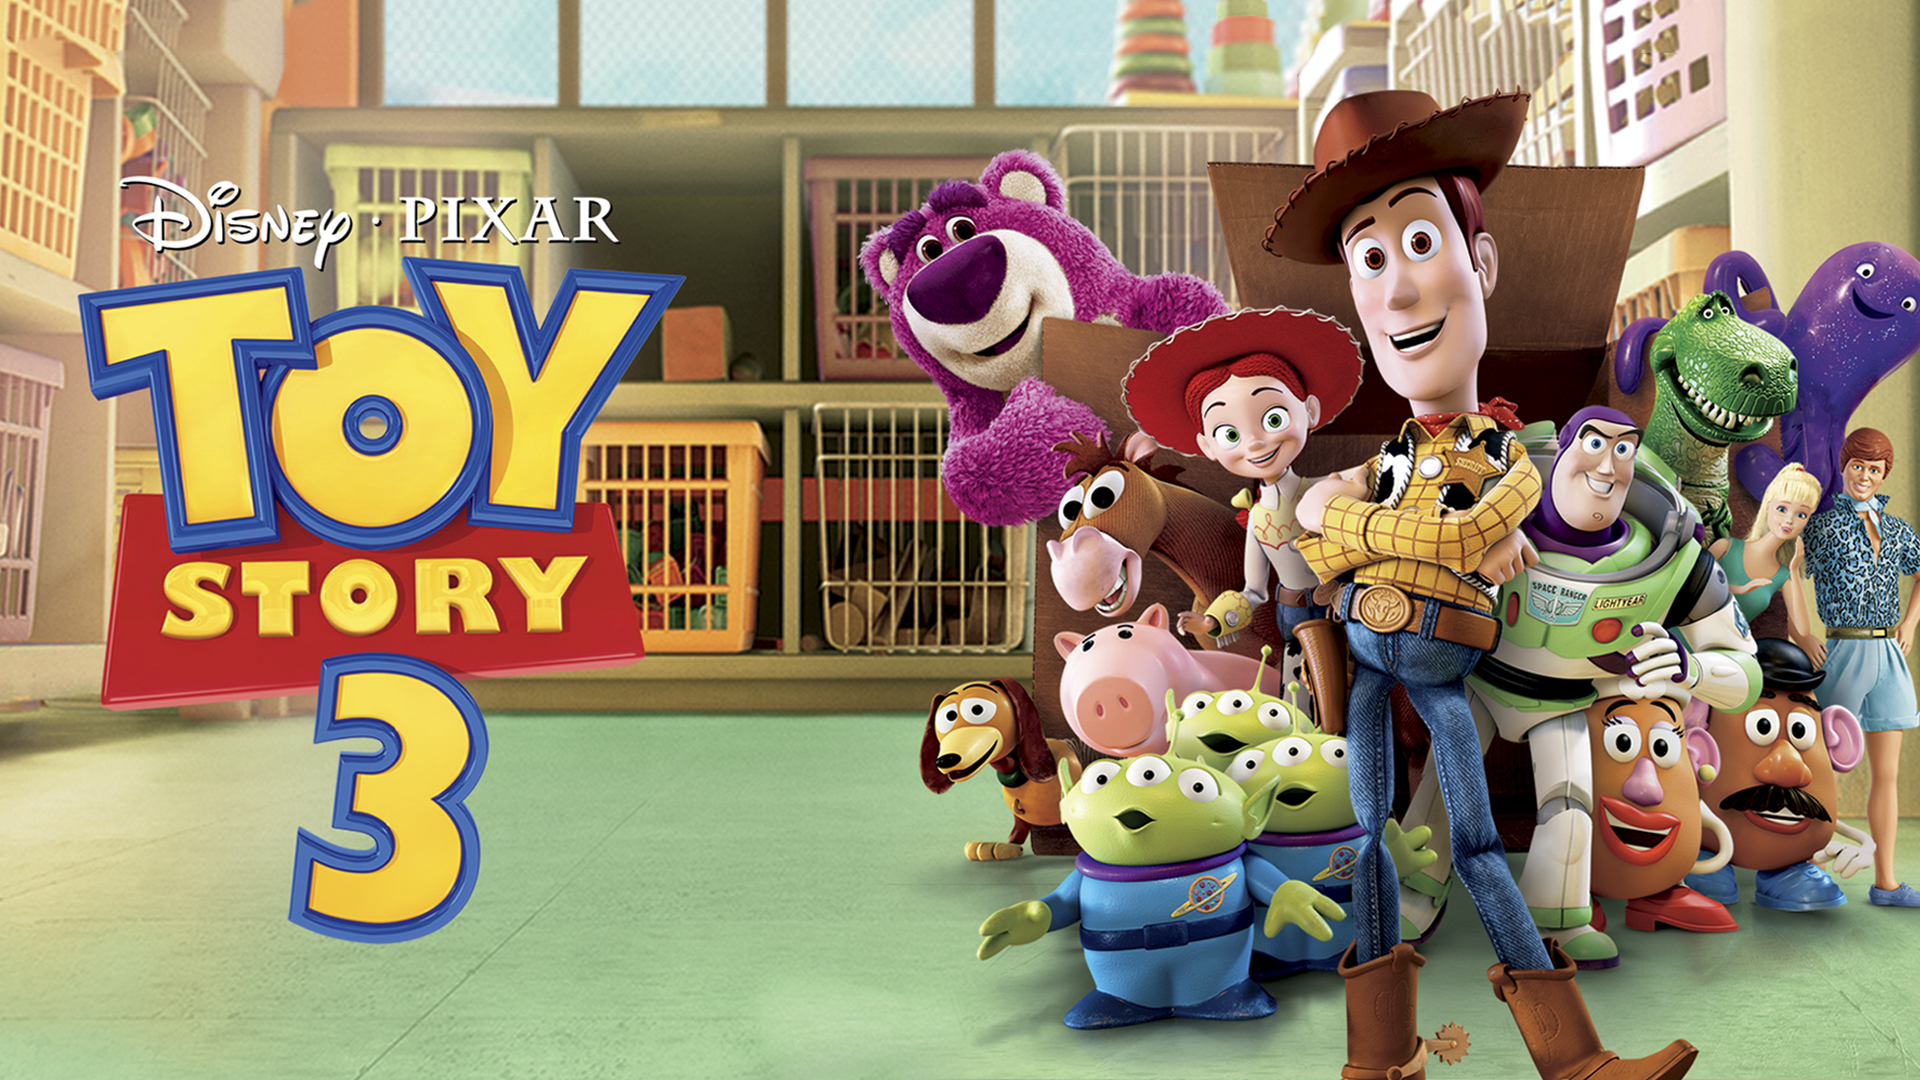 Toy Story 3 (2010)